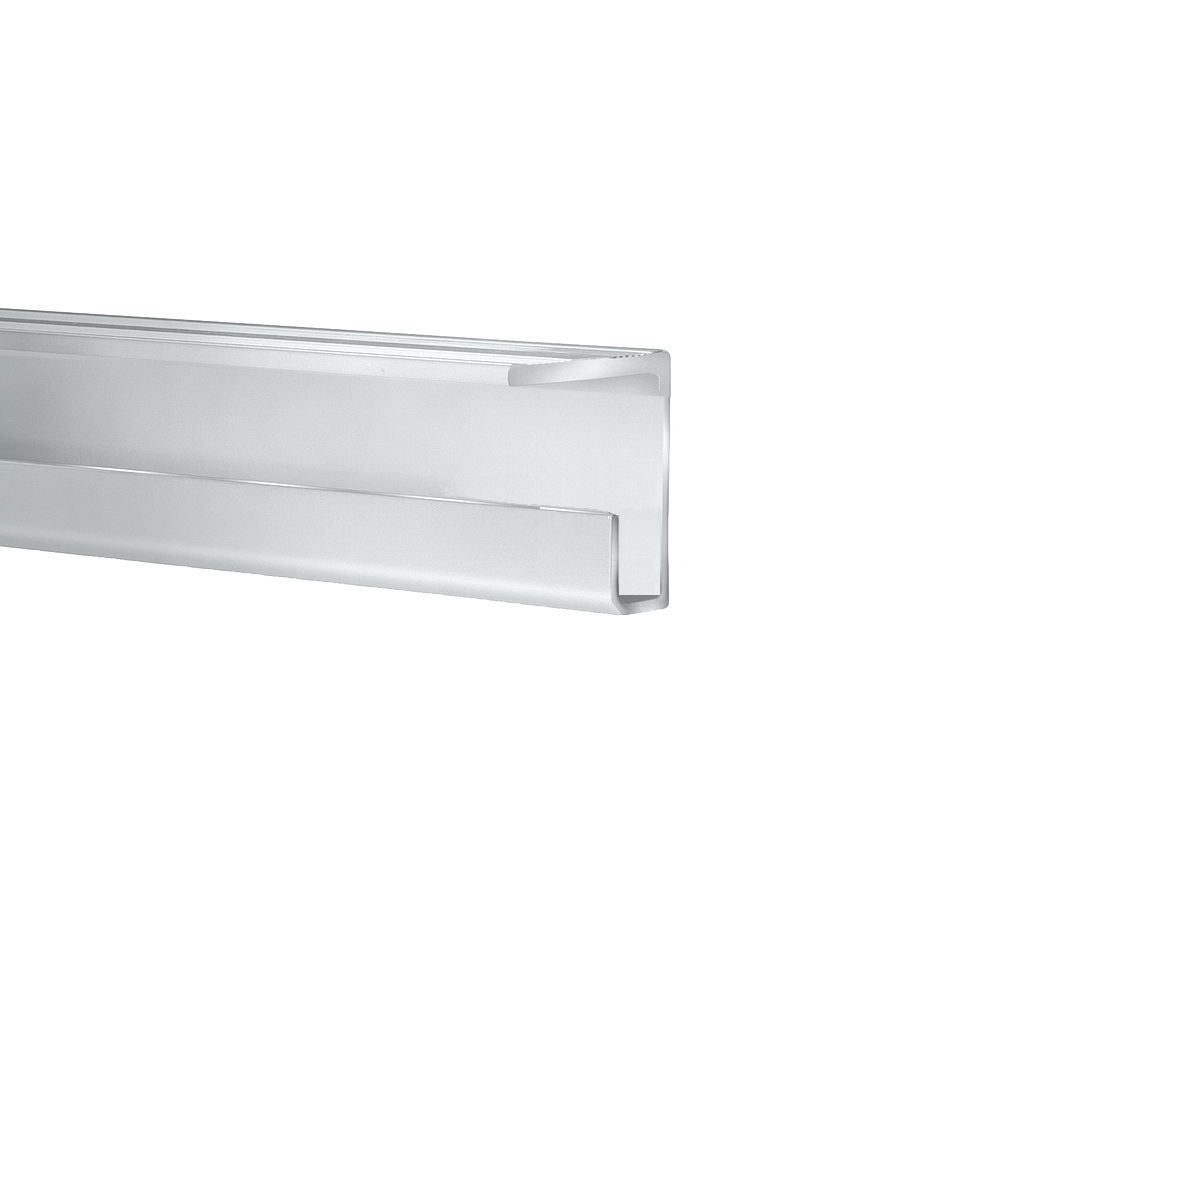 Ceiling Rail System, Clear Anodized Finish